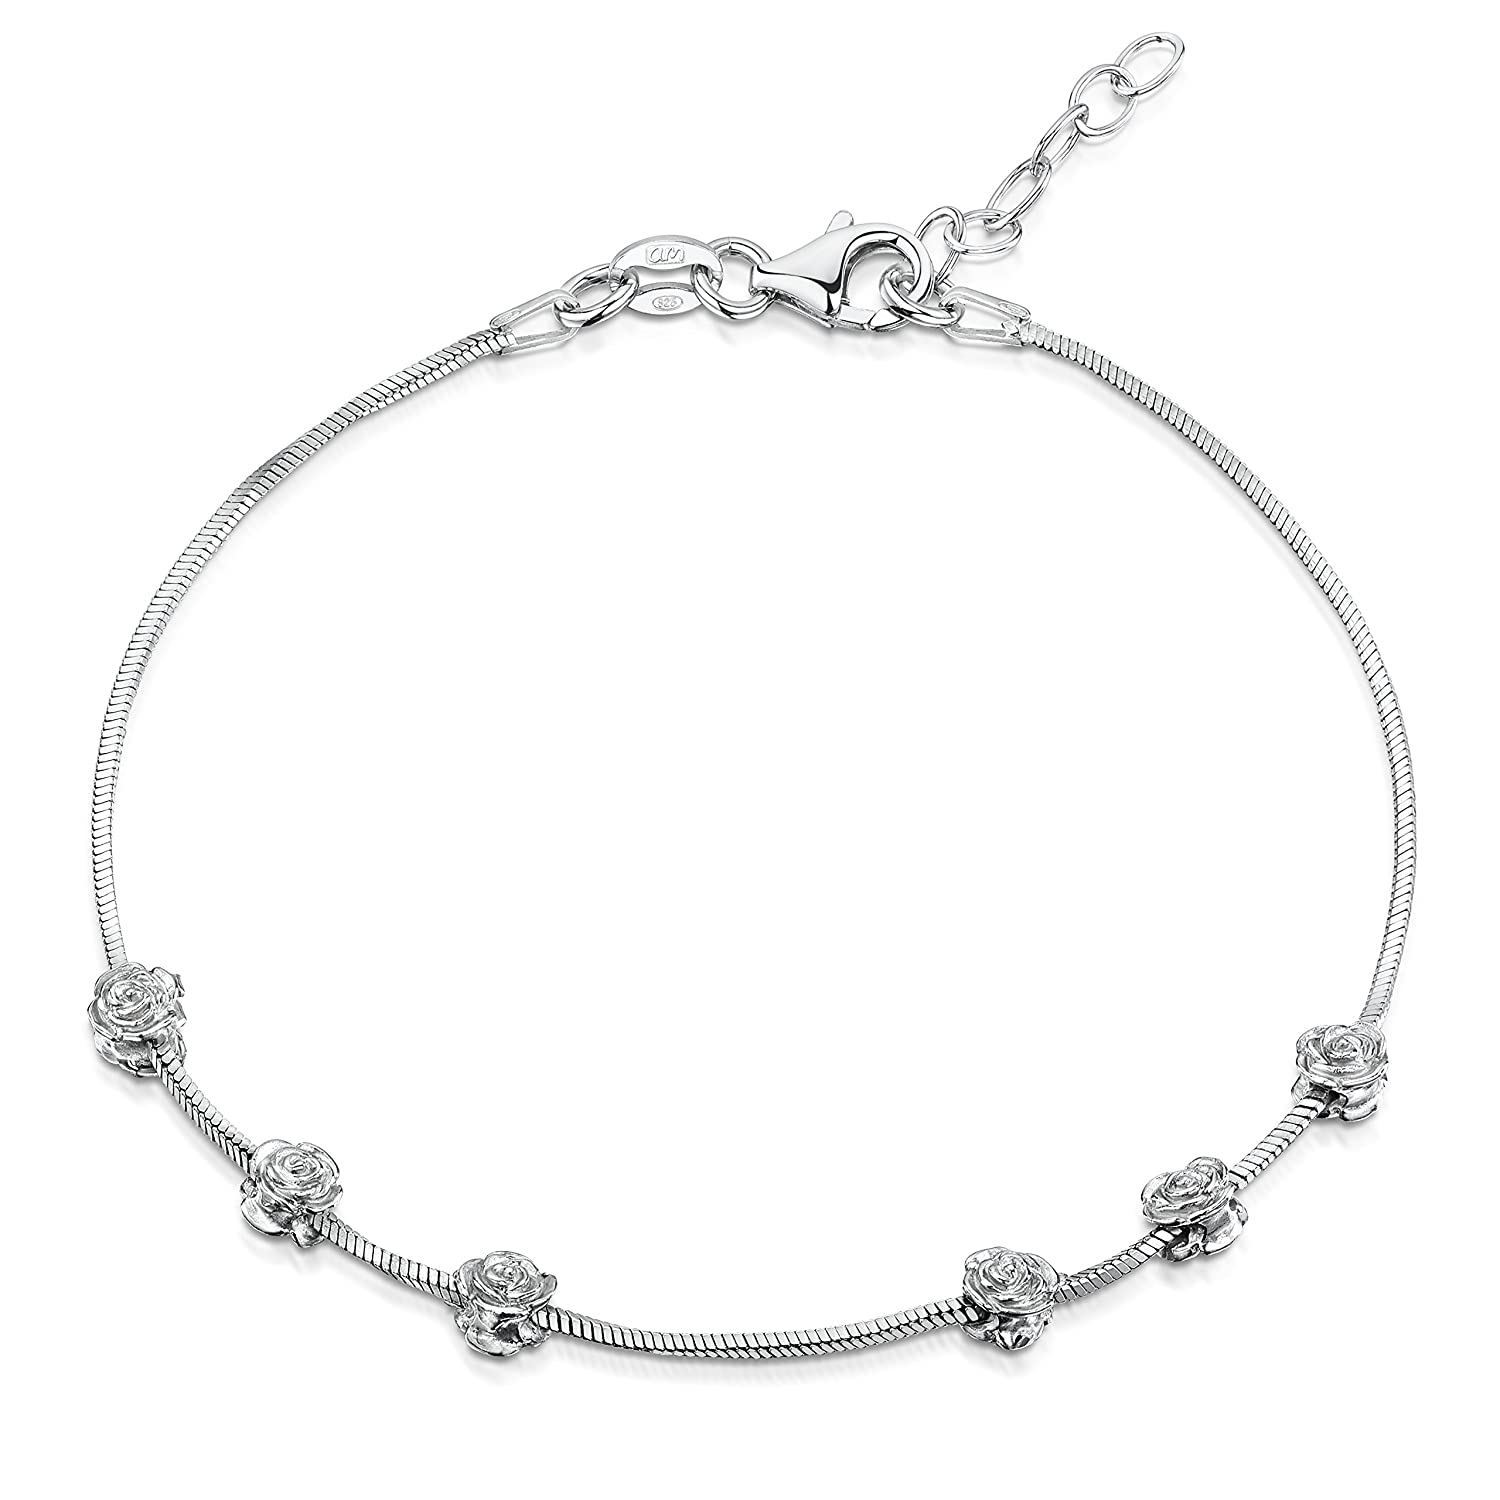 Amberta 925 Sterling Silver Adjustable Ankle Bracelet - Chain 9 to 10 inch - Flexible Fit TIE-S925-ANK-017